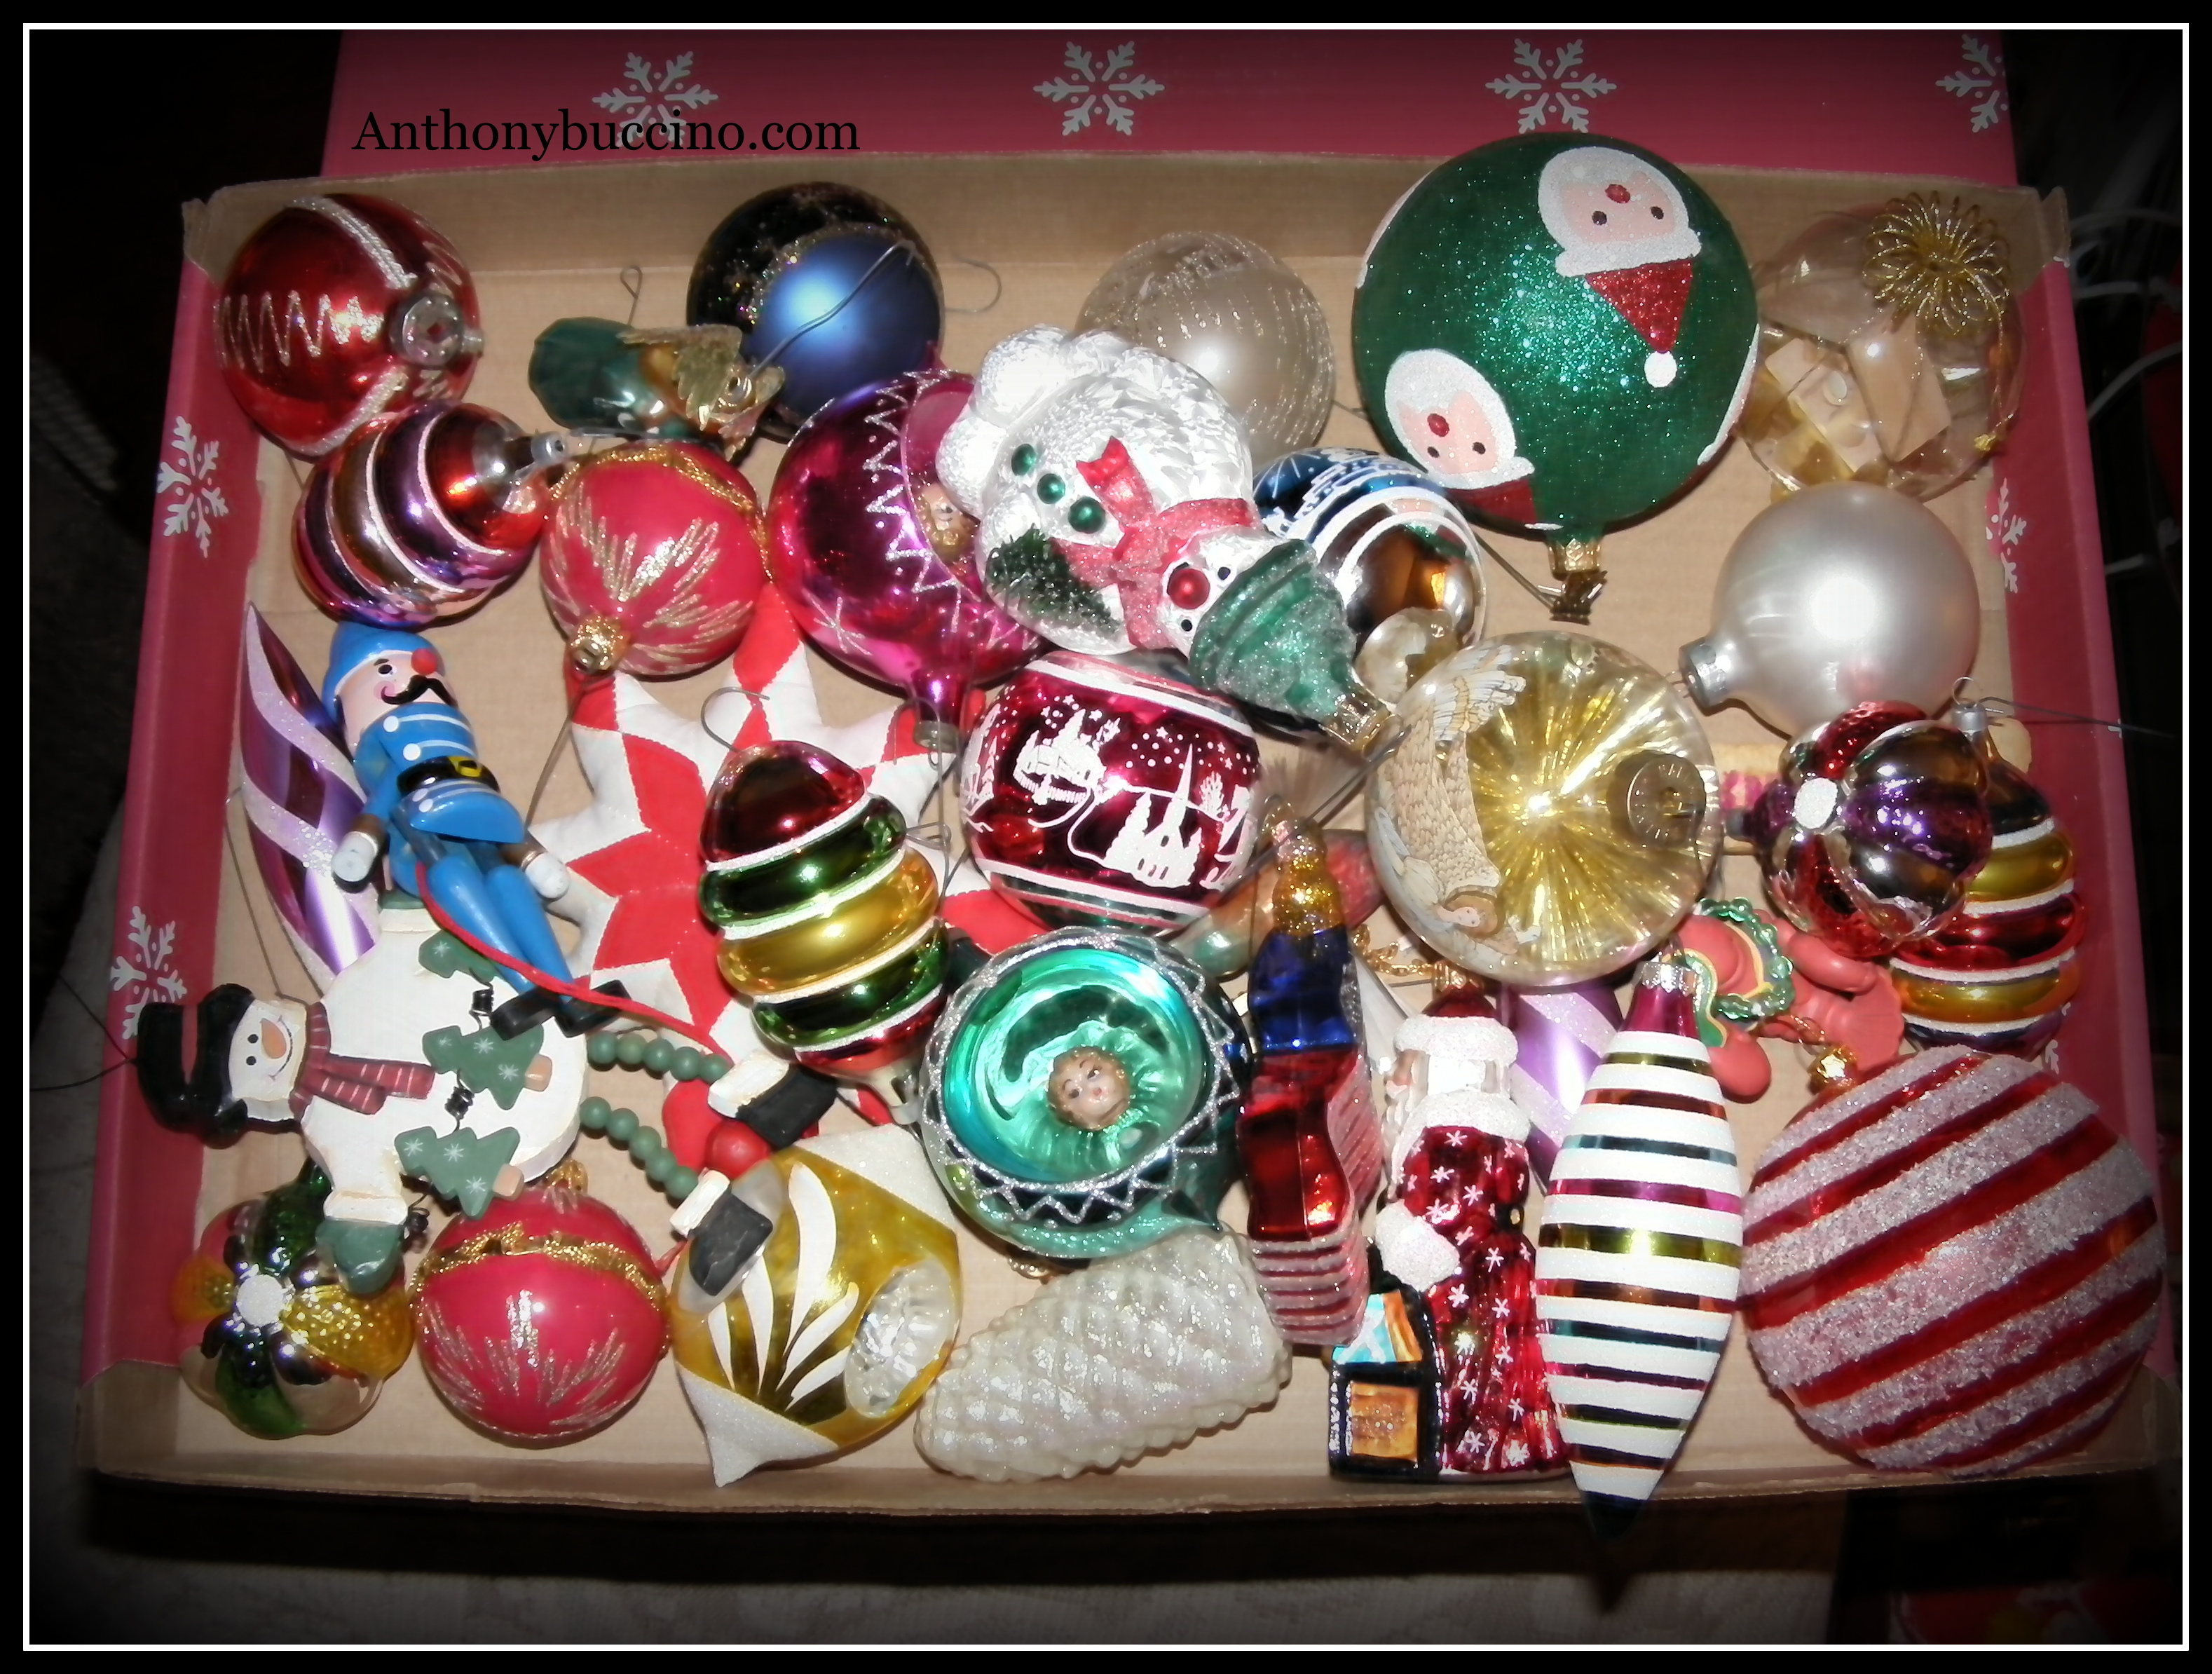 Christmas Tree Ornaments, to hang or not to hang - by Anthony Buccino Copyright © 2009